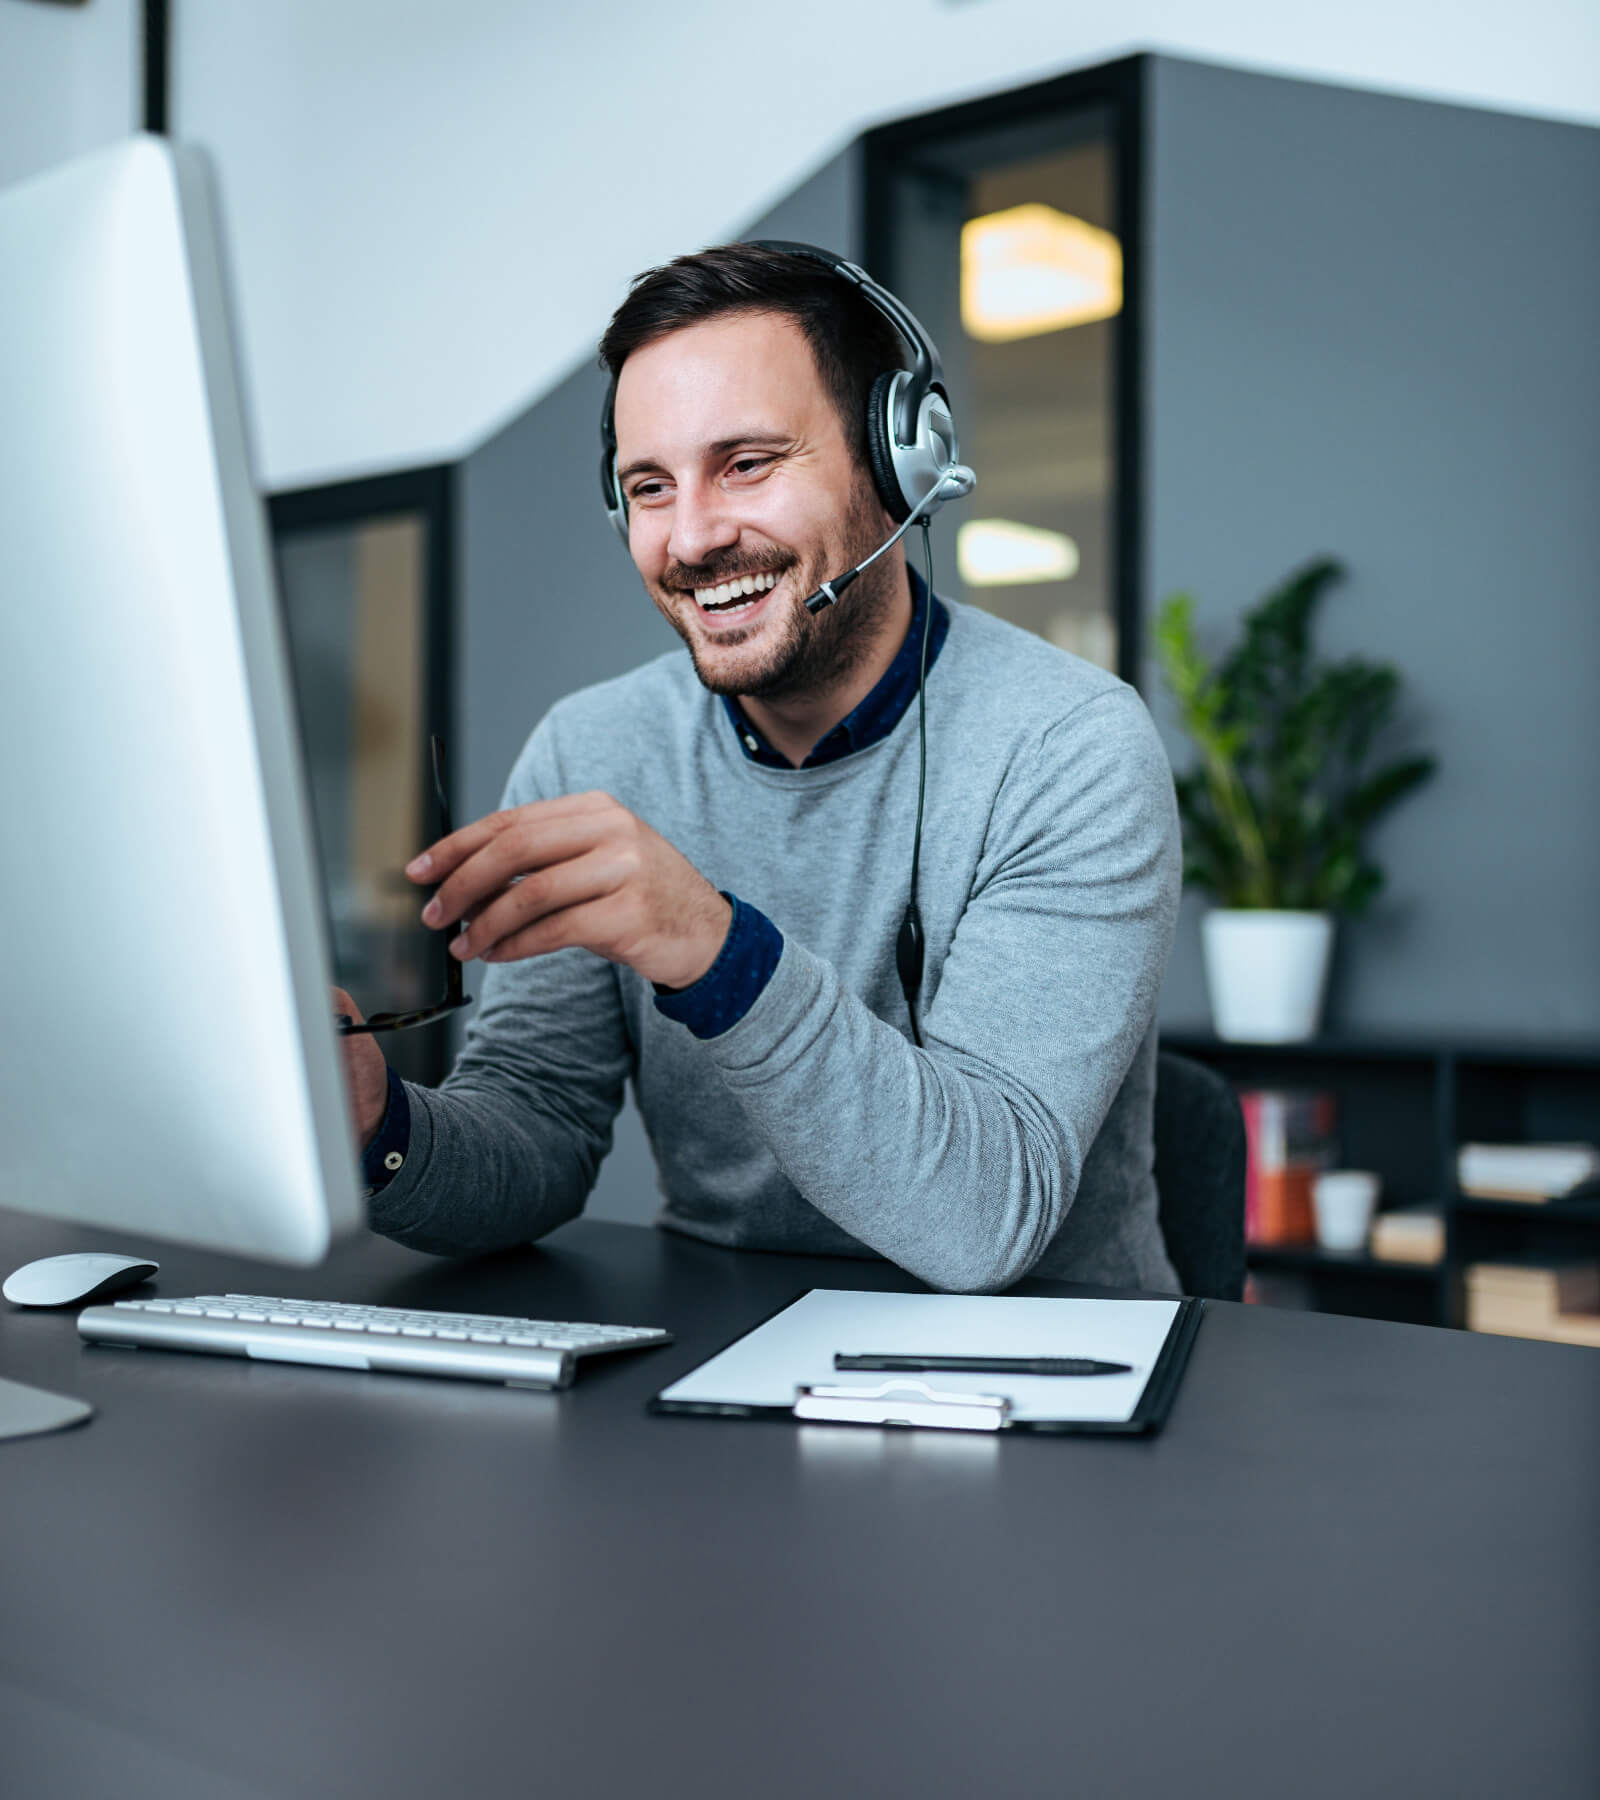 A customer service representative man wearing headphone at his desk attending the call with a smile on his face